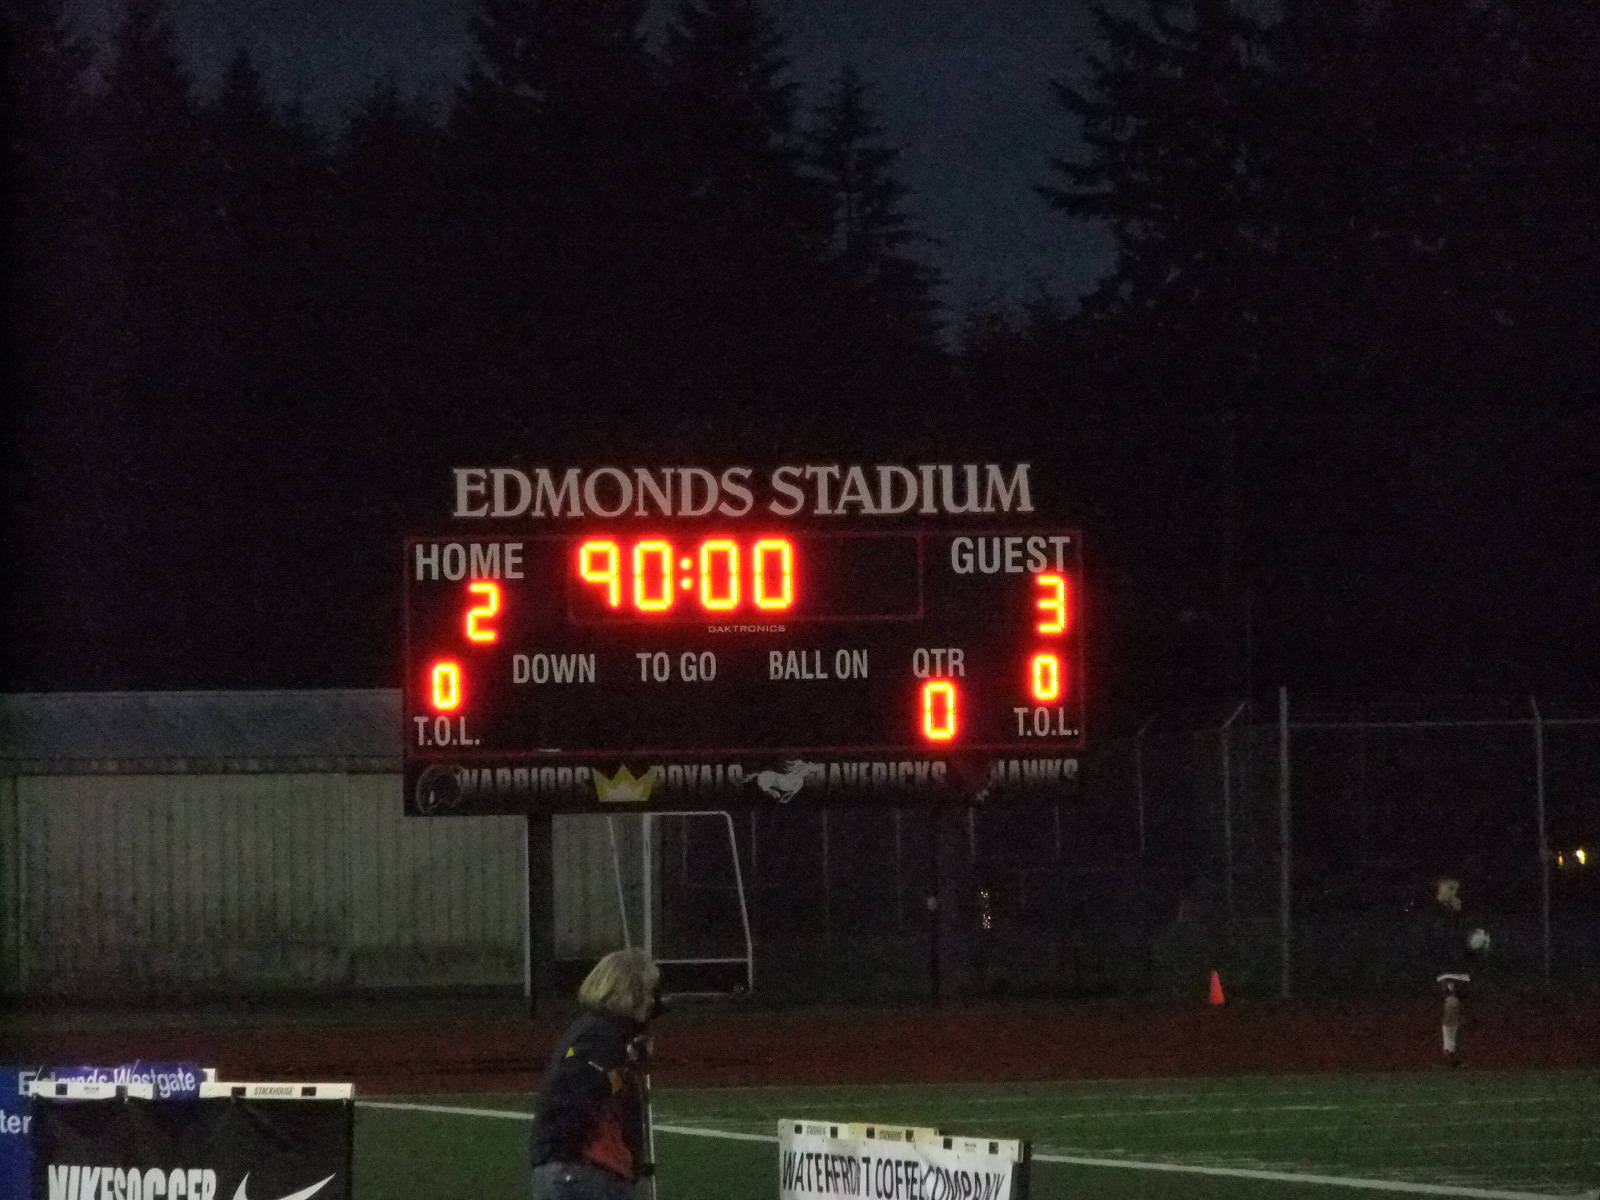 Edmonds Stadium 38